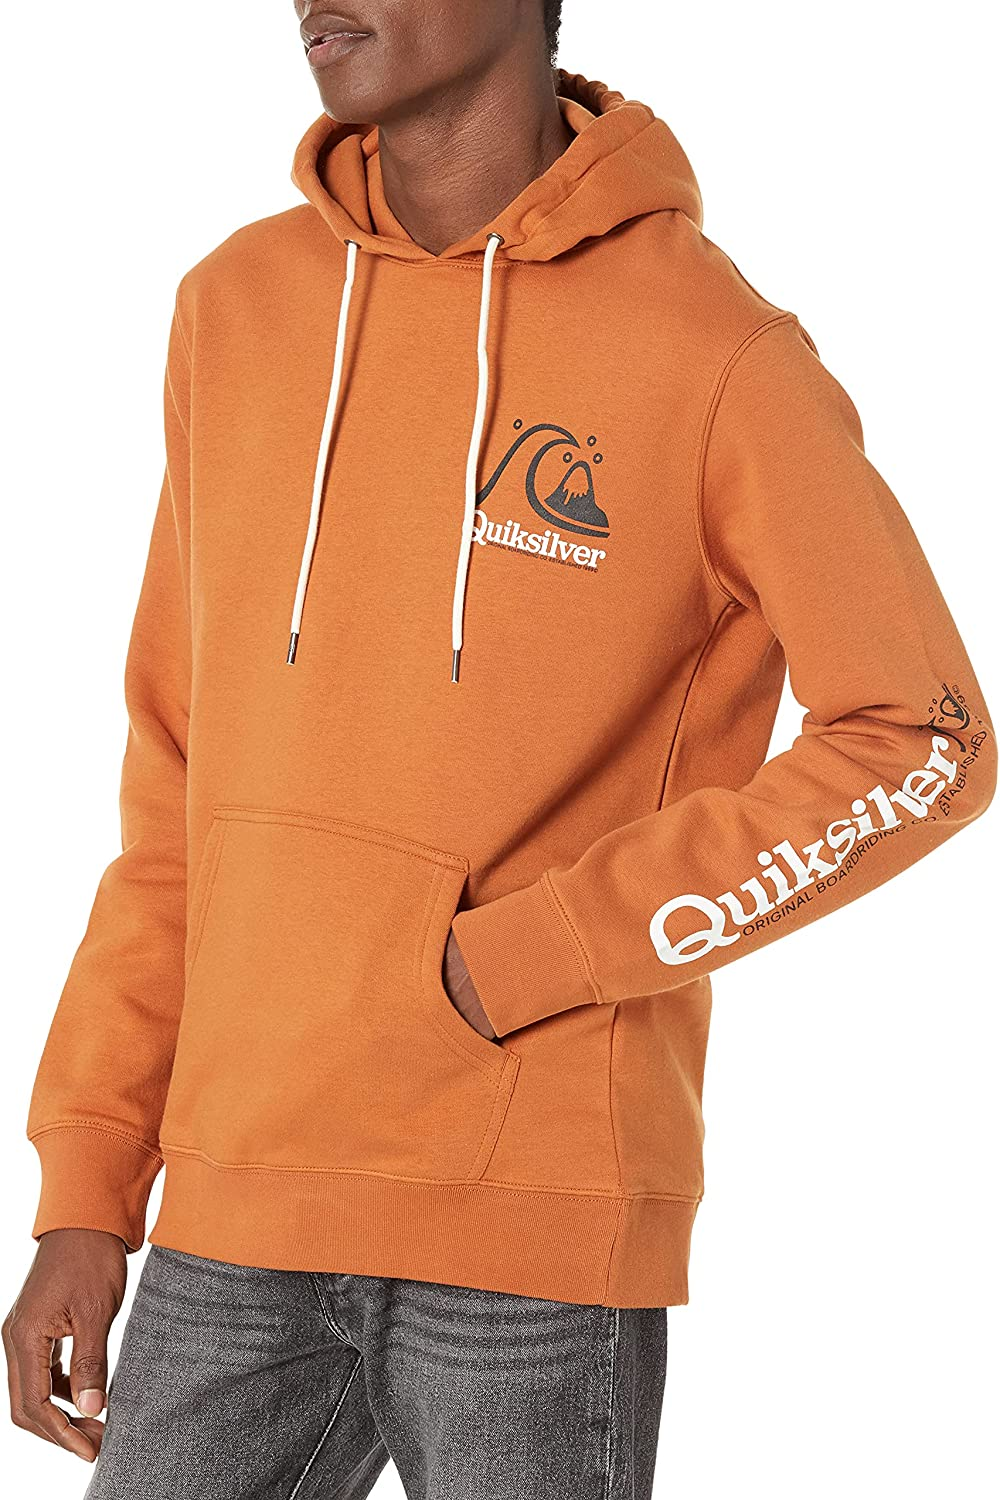 Quiksilver Men's Max 43% OFF Super-cheap First Hoodie Up